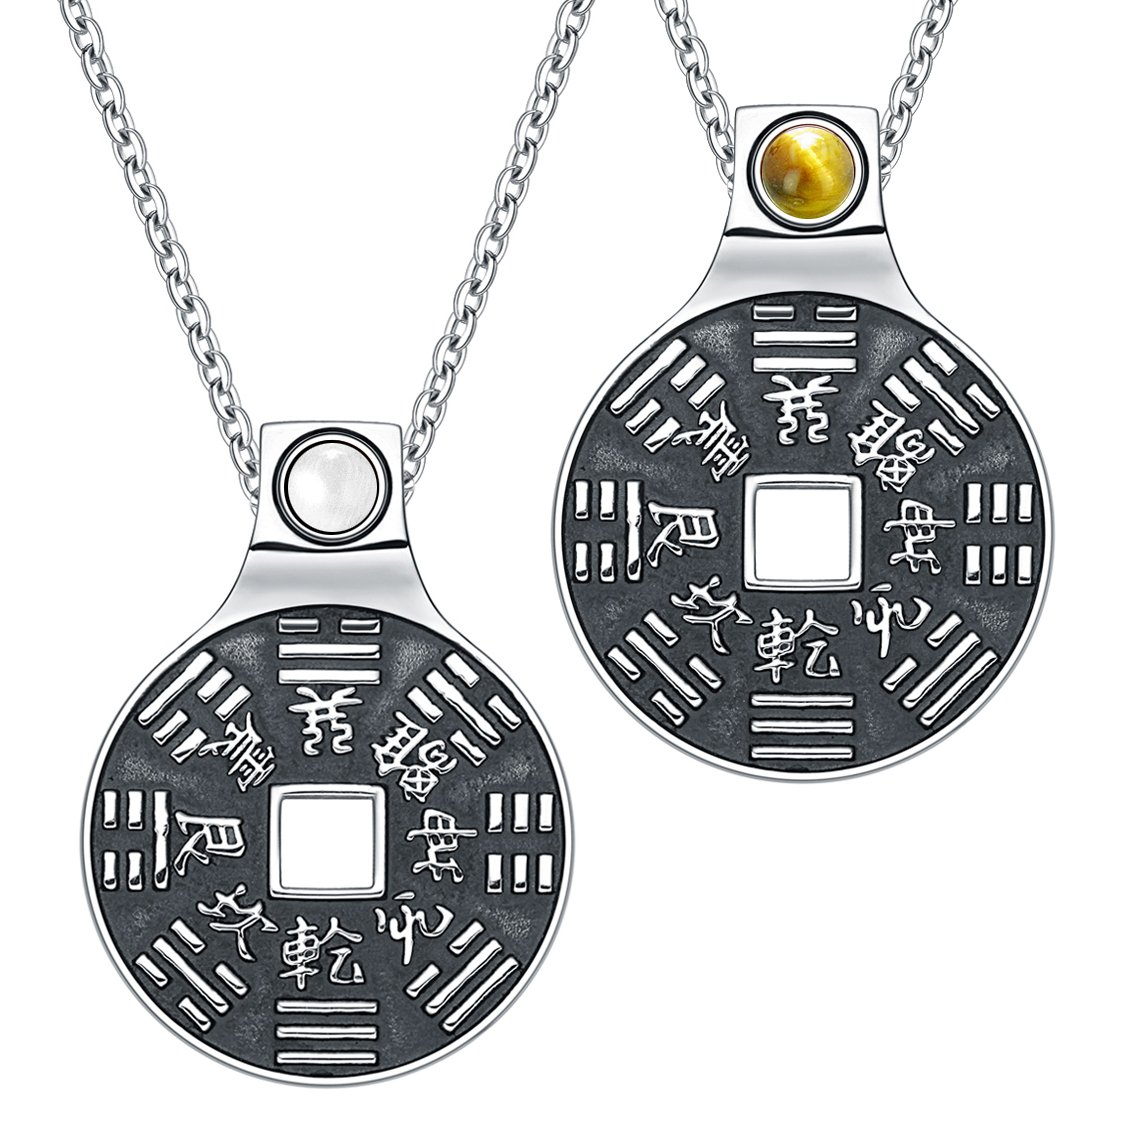 Yin Yang Amulets Love Couple BaGua Forces of Nature Lucky Coins Tiger Eye White Cats Eye Necklaces